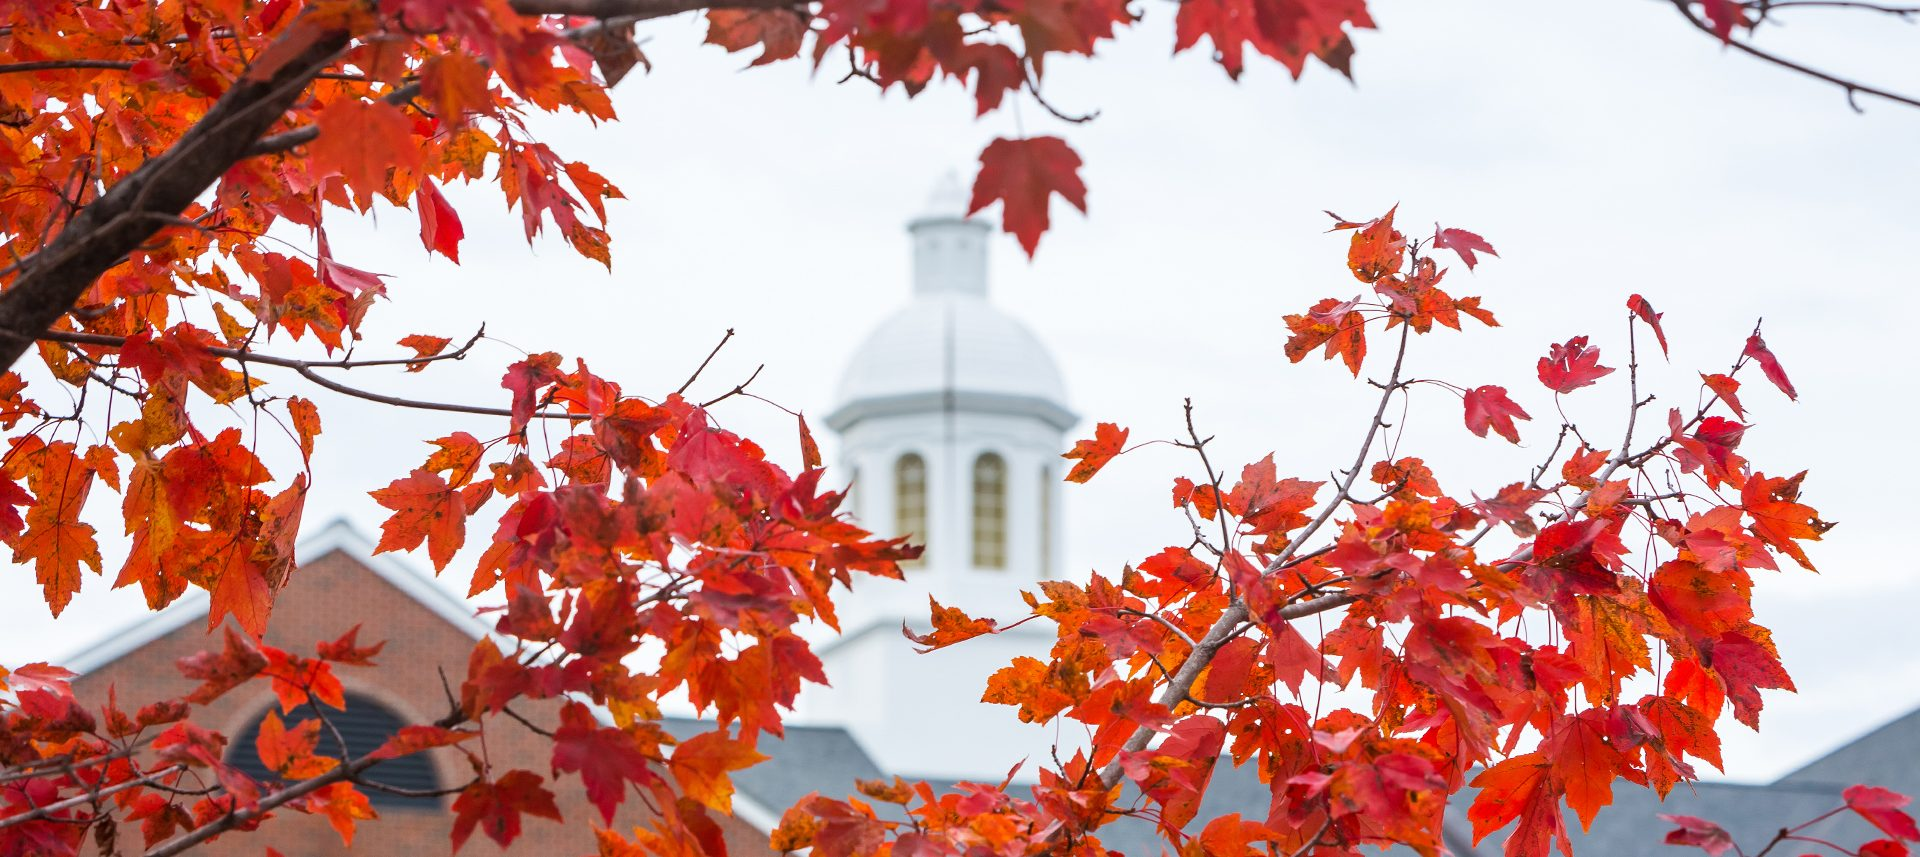 Warren Building cupola framed by fall leaves.